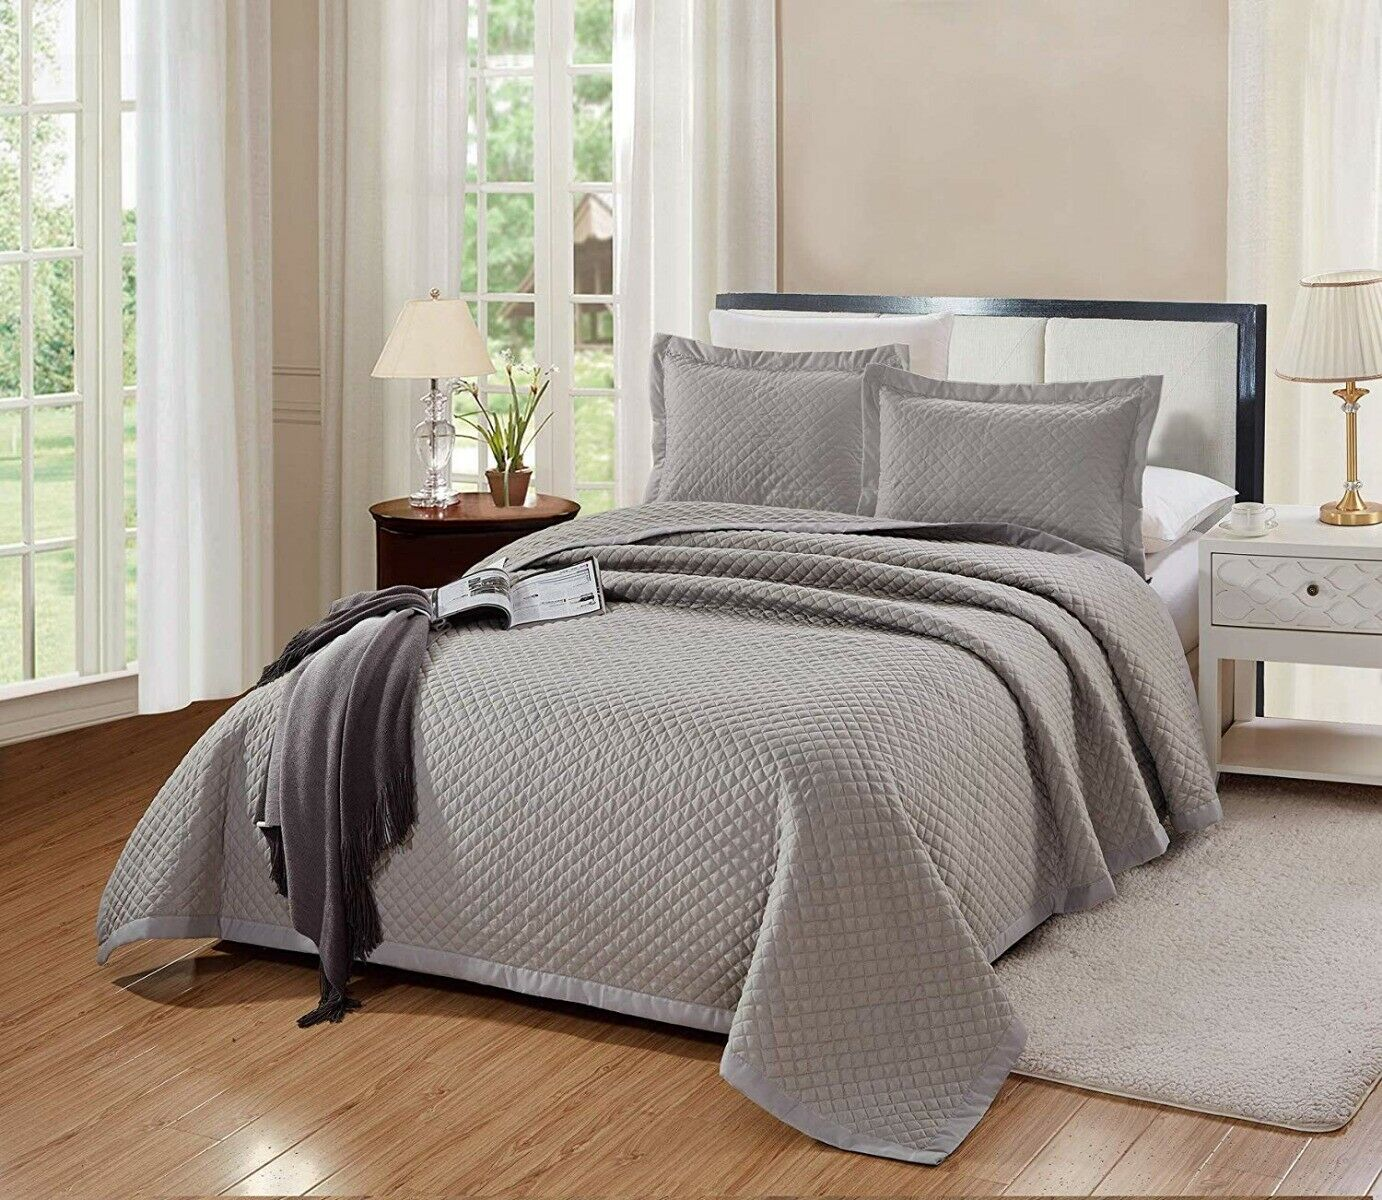 3 PC King Size Naples Quilt Solid Grey/Gray Bedspread Microf